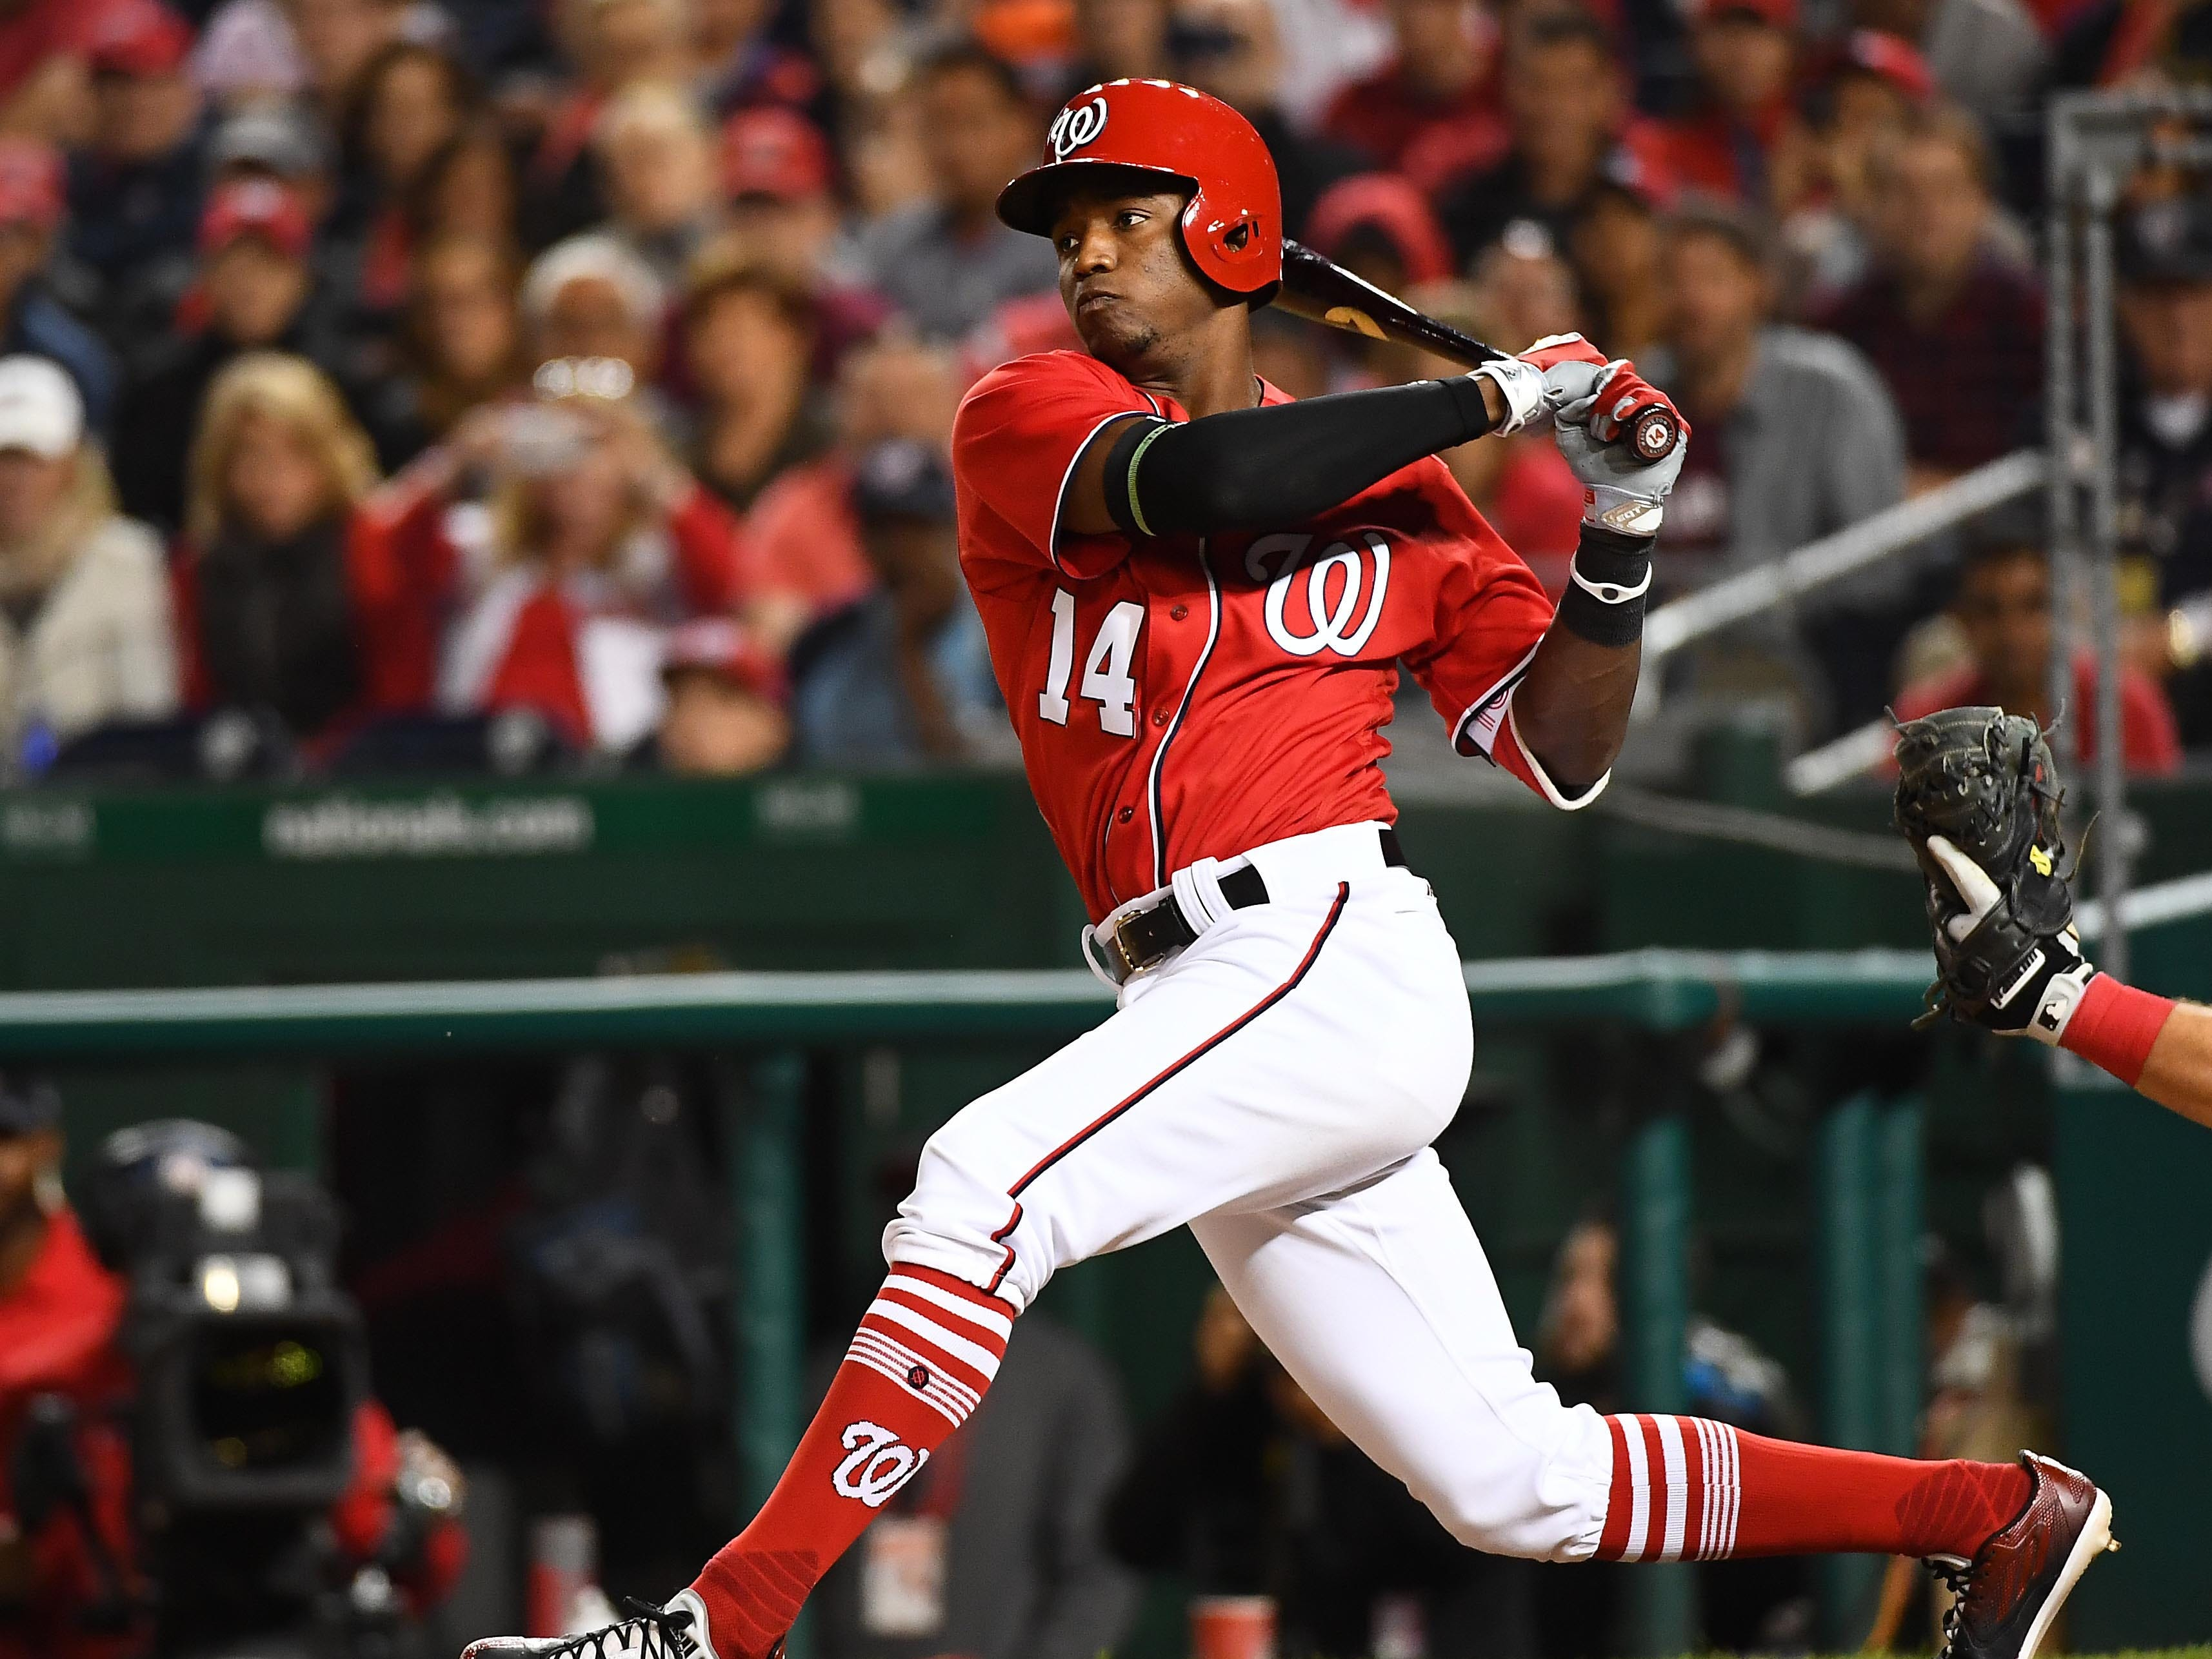 2. Victor Robles, OF, Nationals